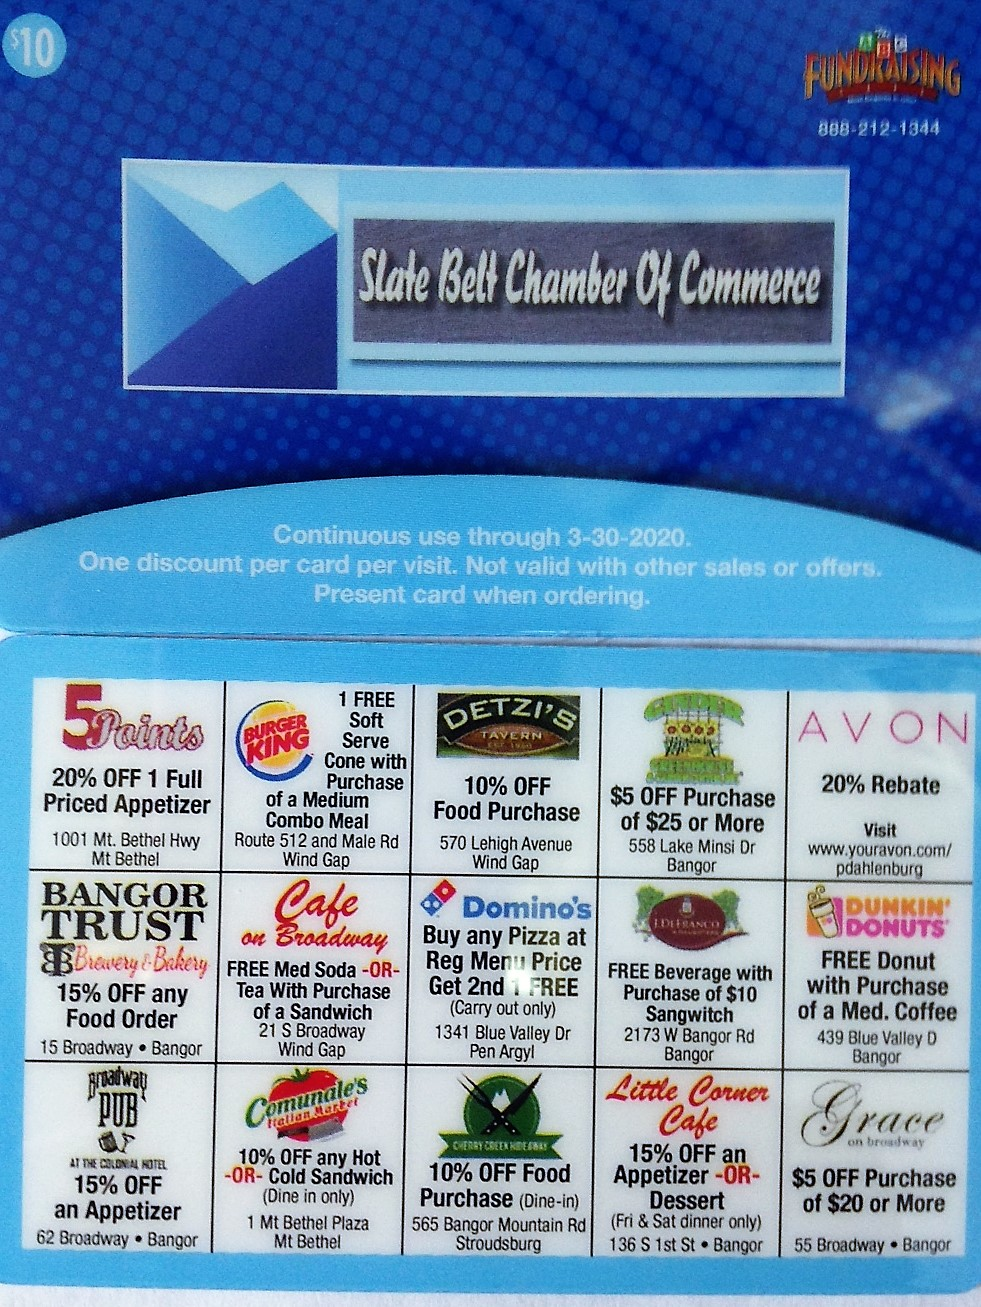 2019/2020 Slate Belt Discount Cards are now available! - Slate Belt